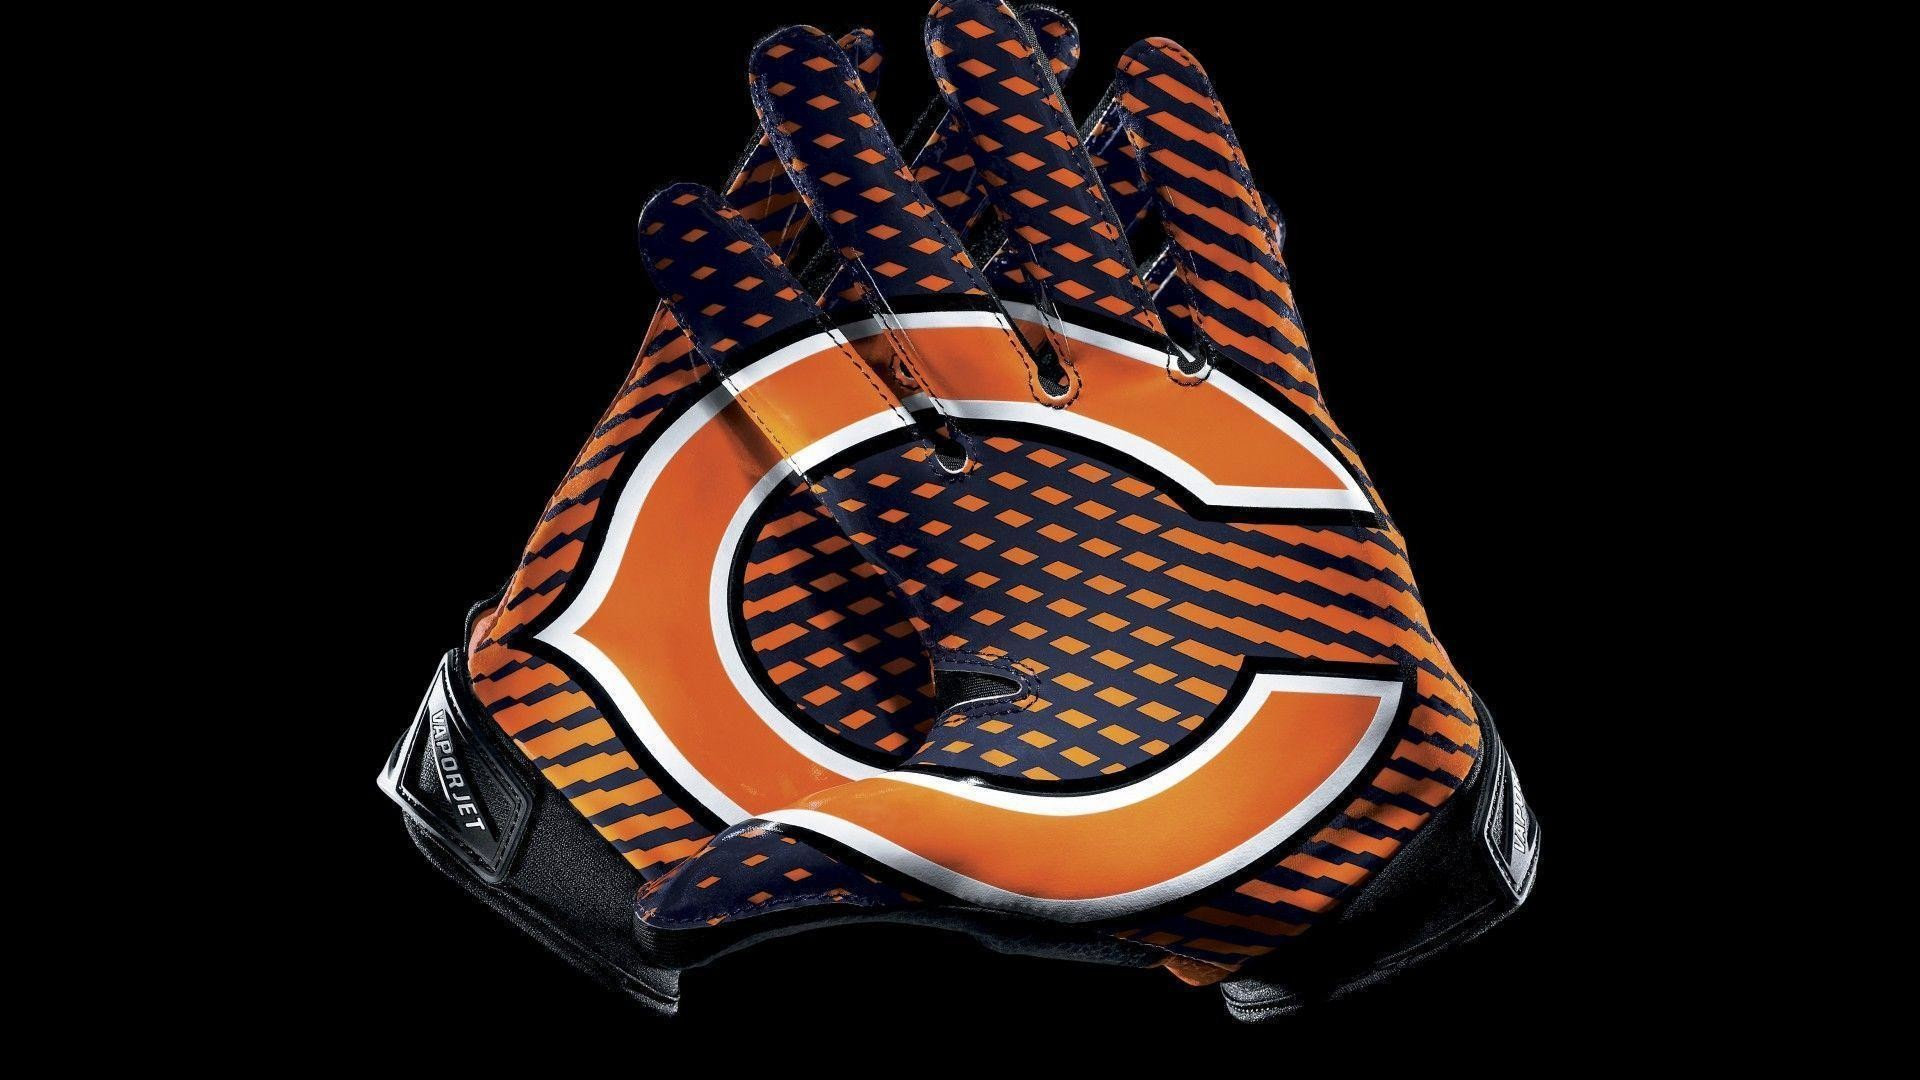 Chicago Bears Backgrounds | Wallpapers, Backgrounds, Images, Art ..